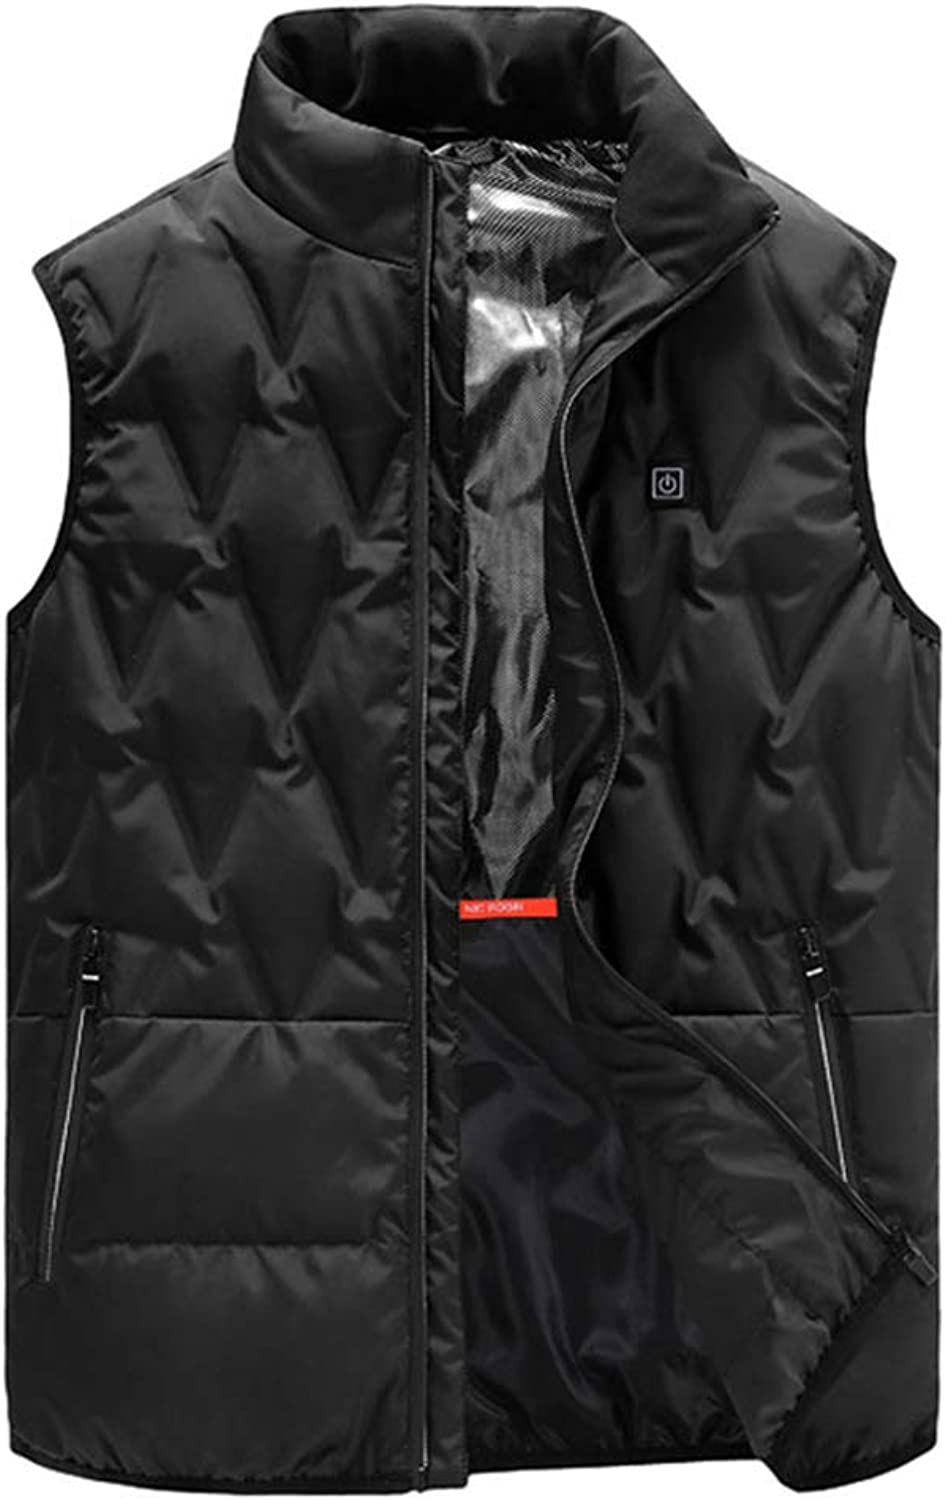 386090d54b2f1 Electric Heated Warm Usb Rechargeable Gilet For Men Women 3 Modes ...